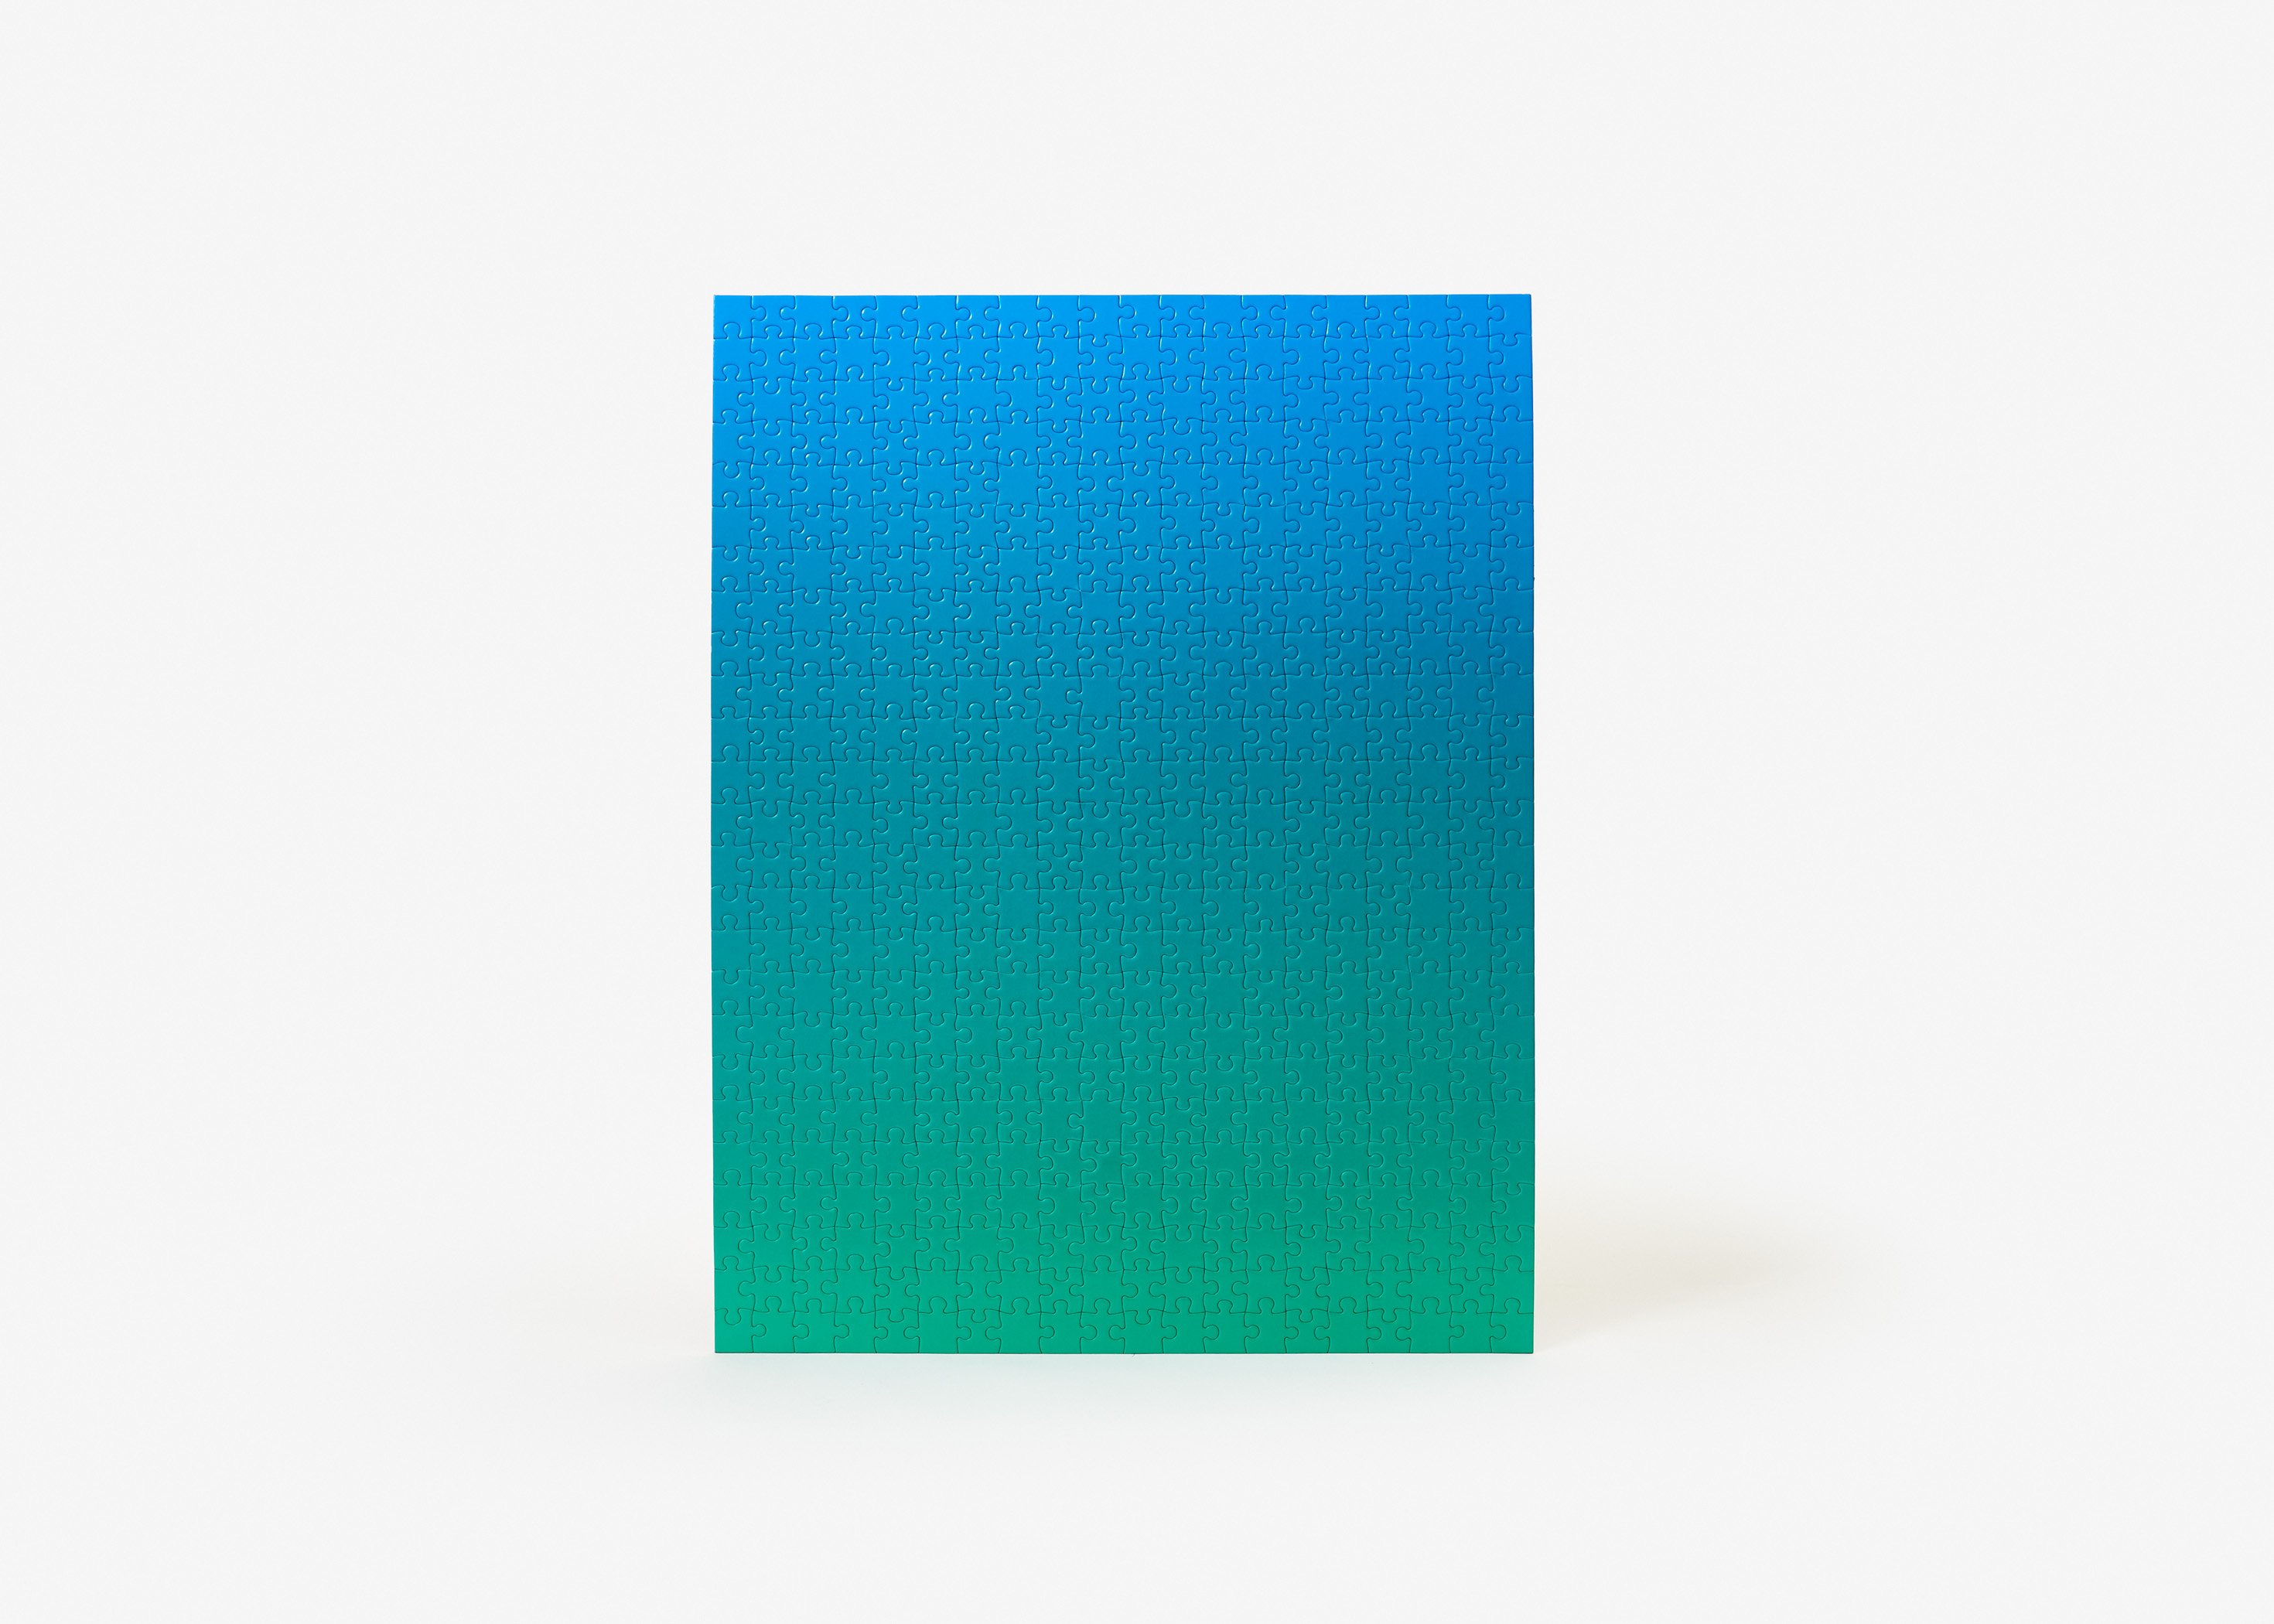 Gradient Puzzle (blue/green) Abstract Jigsaw Puzzle